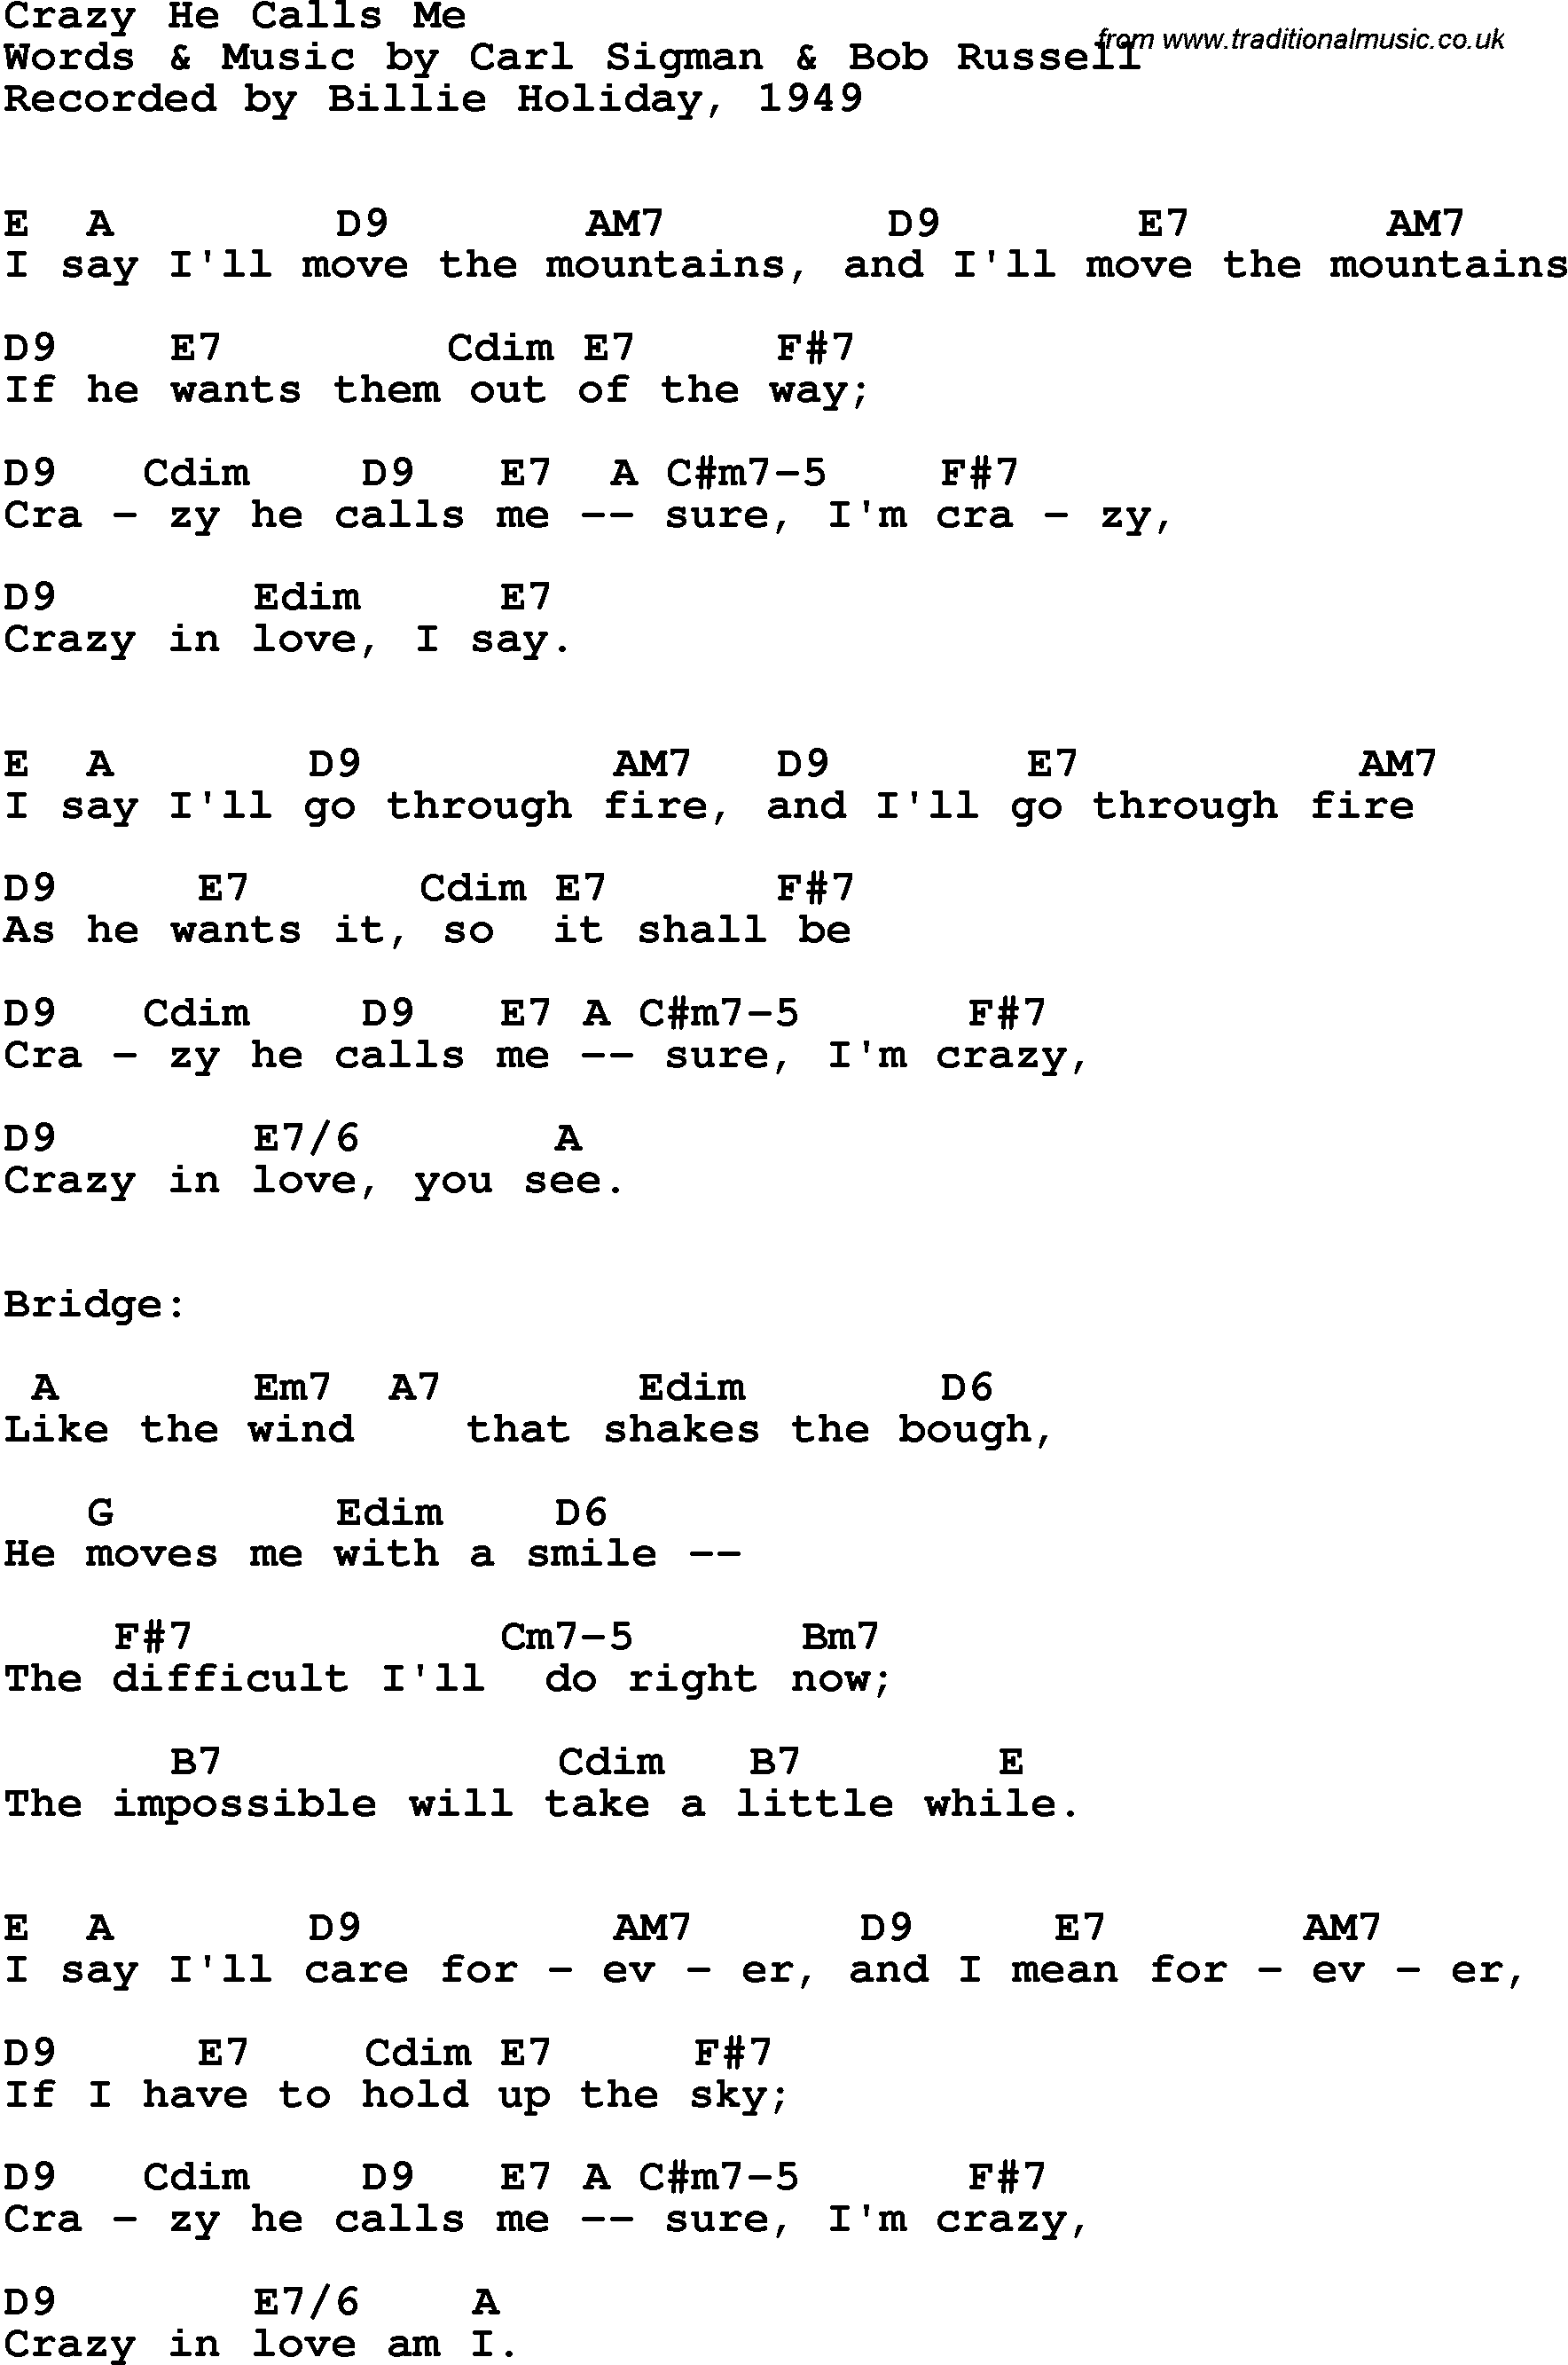 Song lyrics with guitar chords for crazy he calls me billie holiday